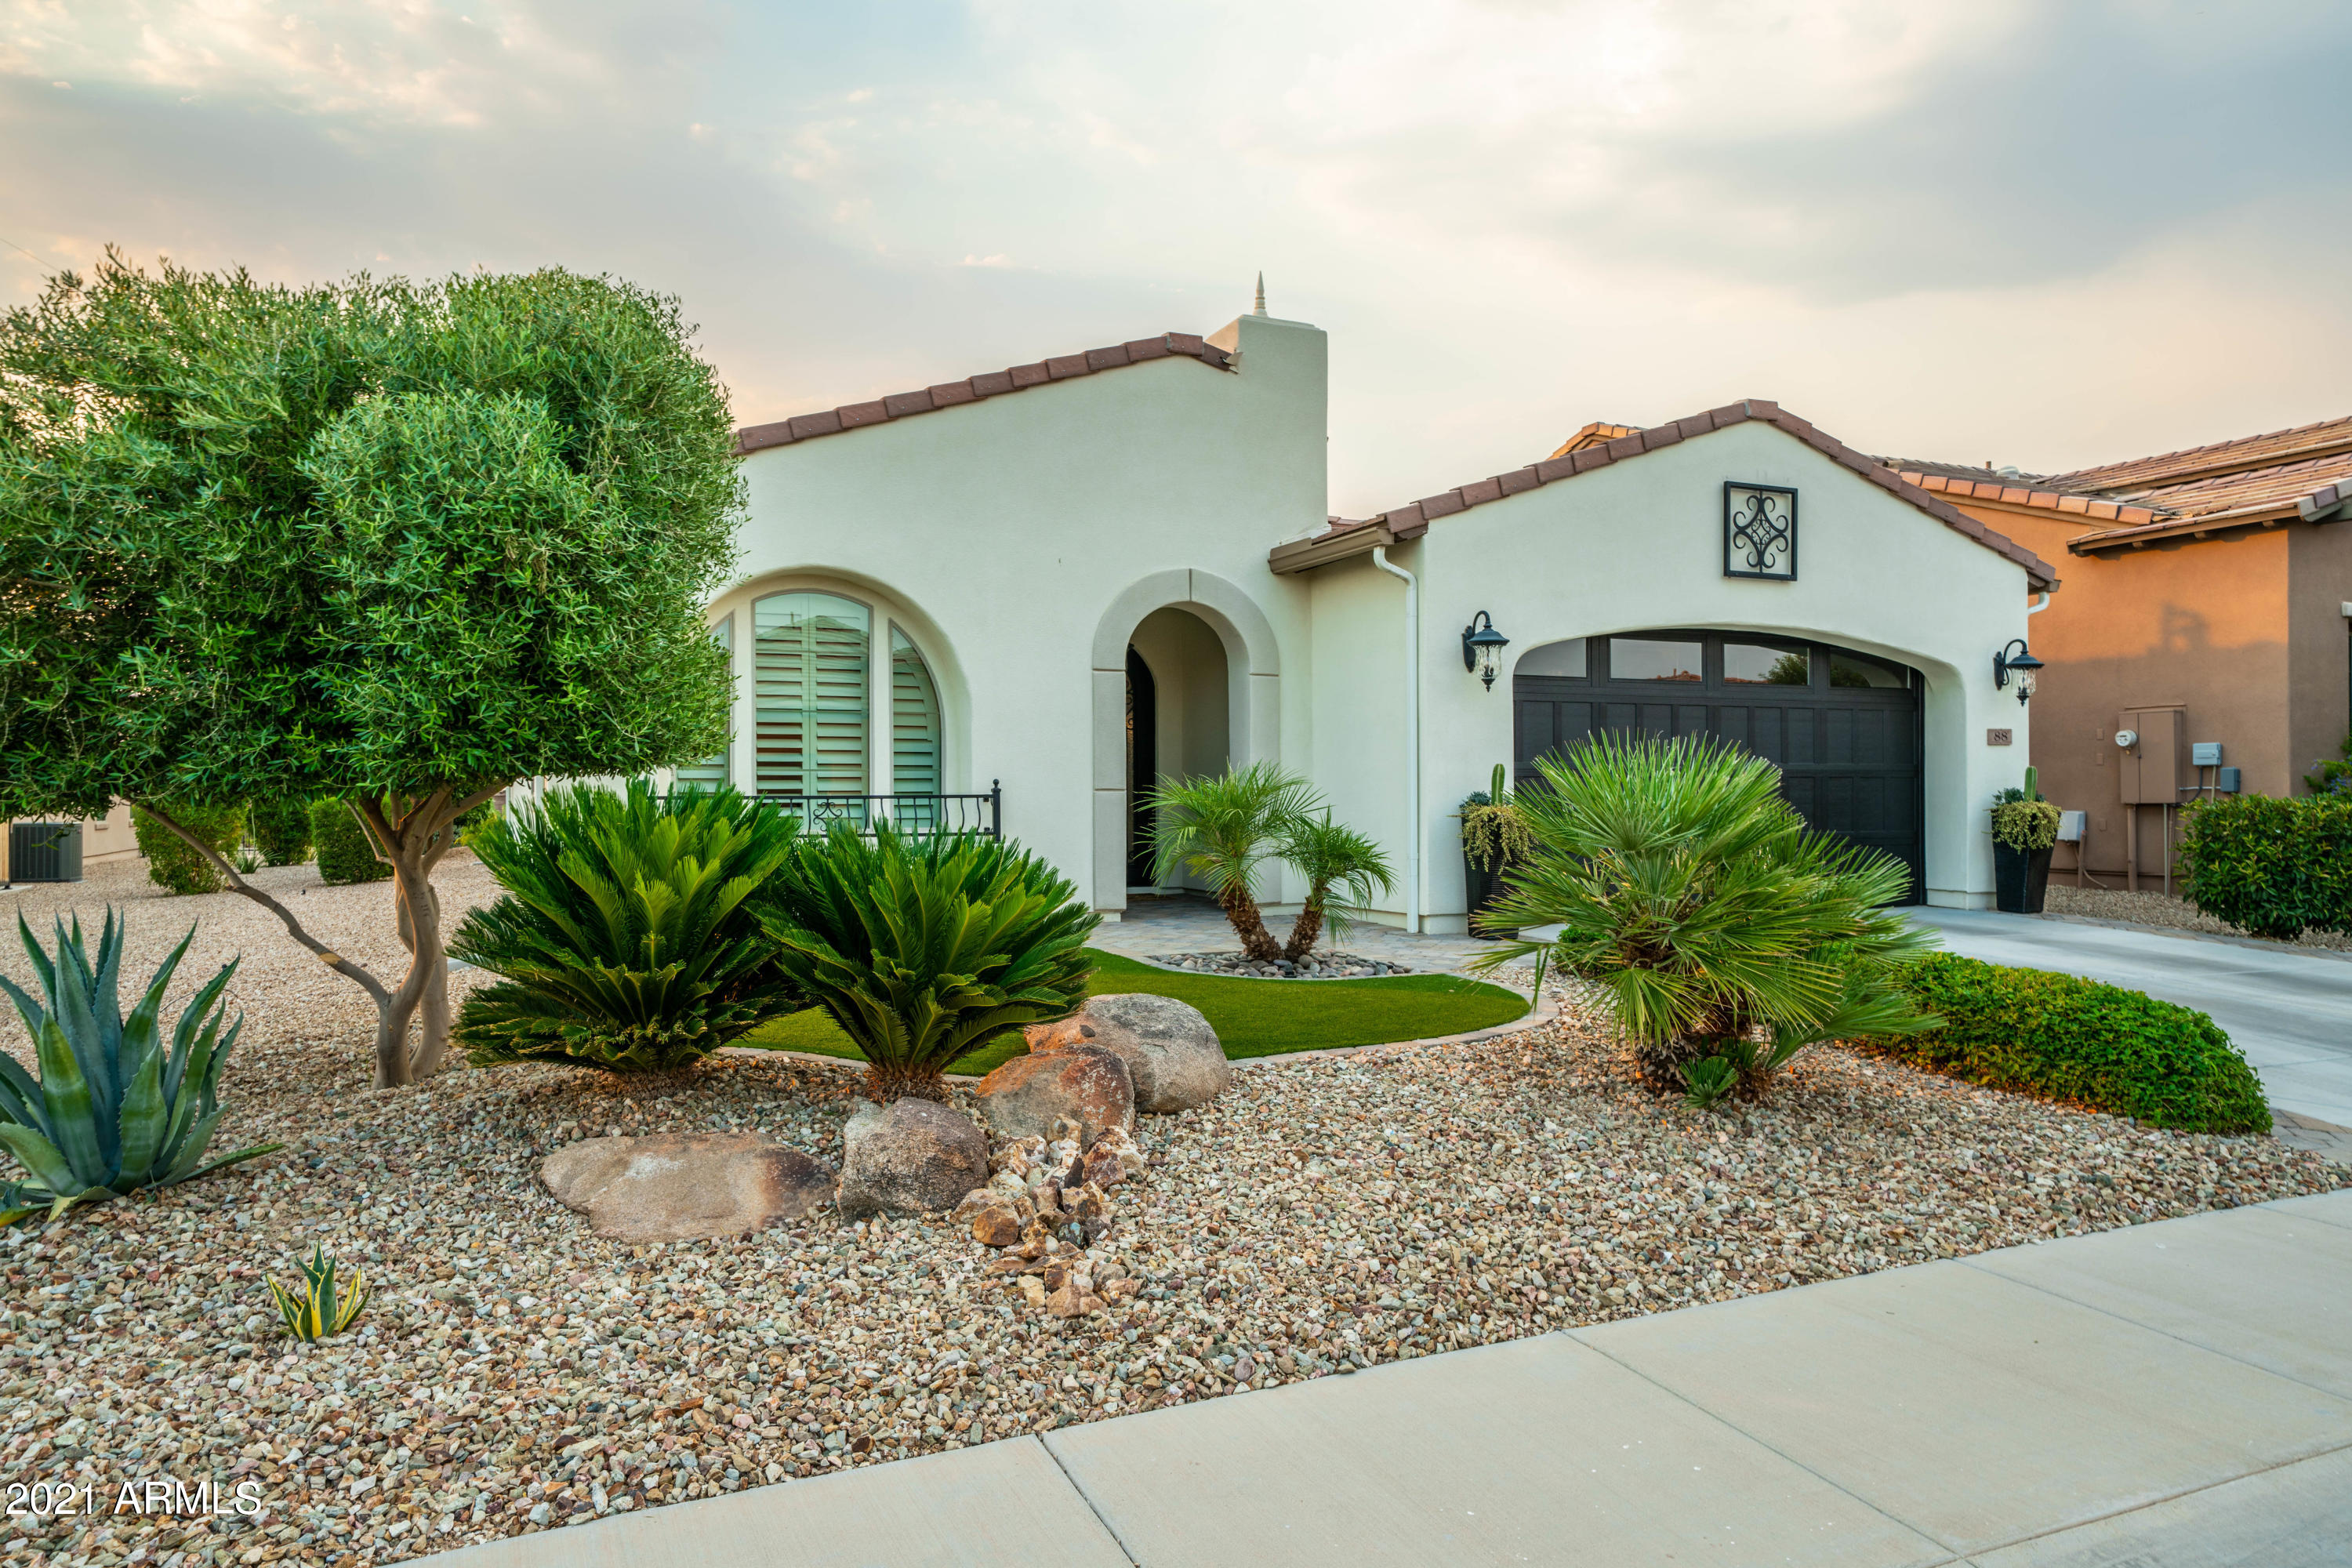 88 ATOLE Court, San Tan Valley, Arizona 85140, 2 Bedrooms Bedrooms, ,2 BathroomsBathrooms,Residential,For Sale,ATOLE,6254716